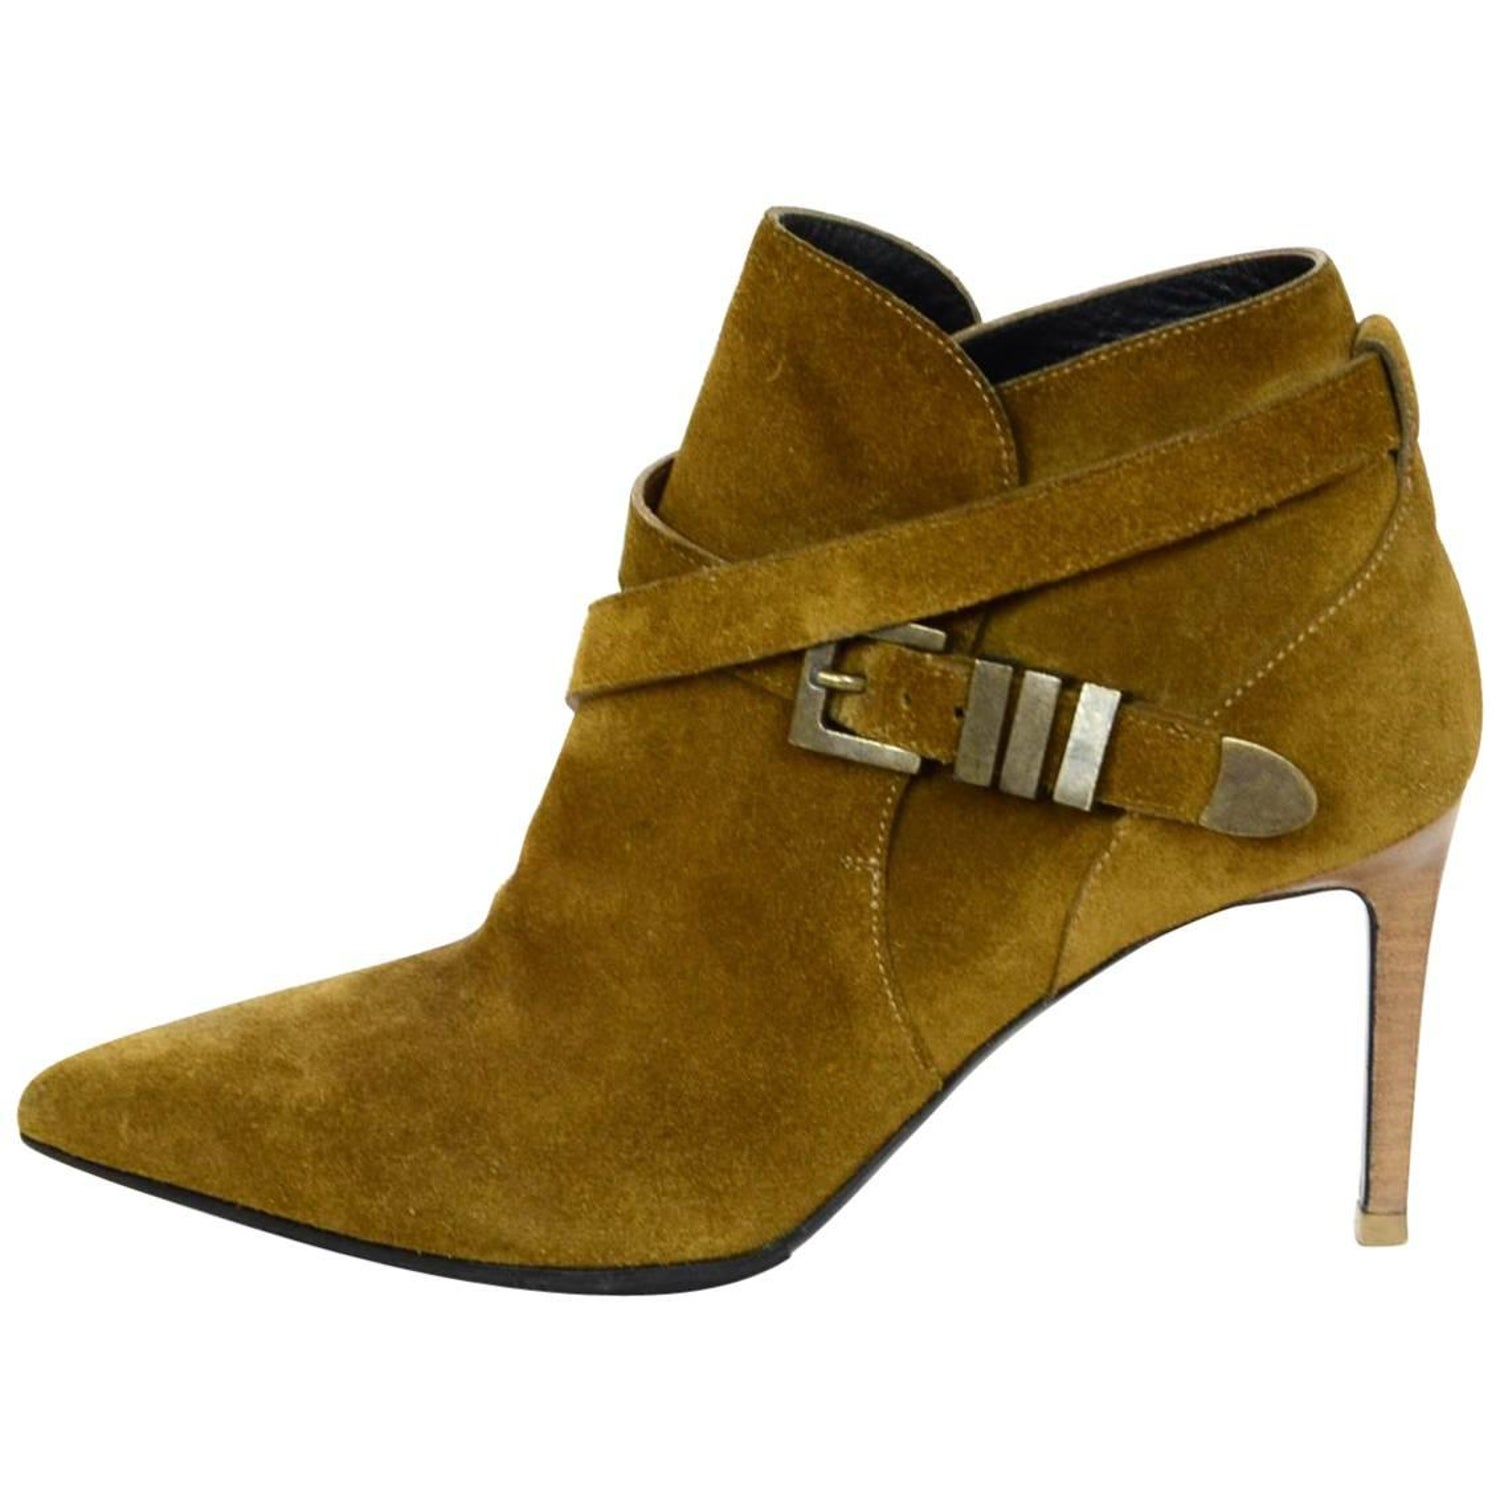 3ed86ec426b Saint Laurent Tan Suede Booties Sz 36.5 For Sale at 1stdibs